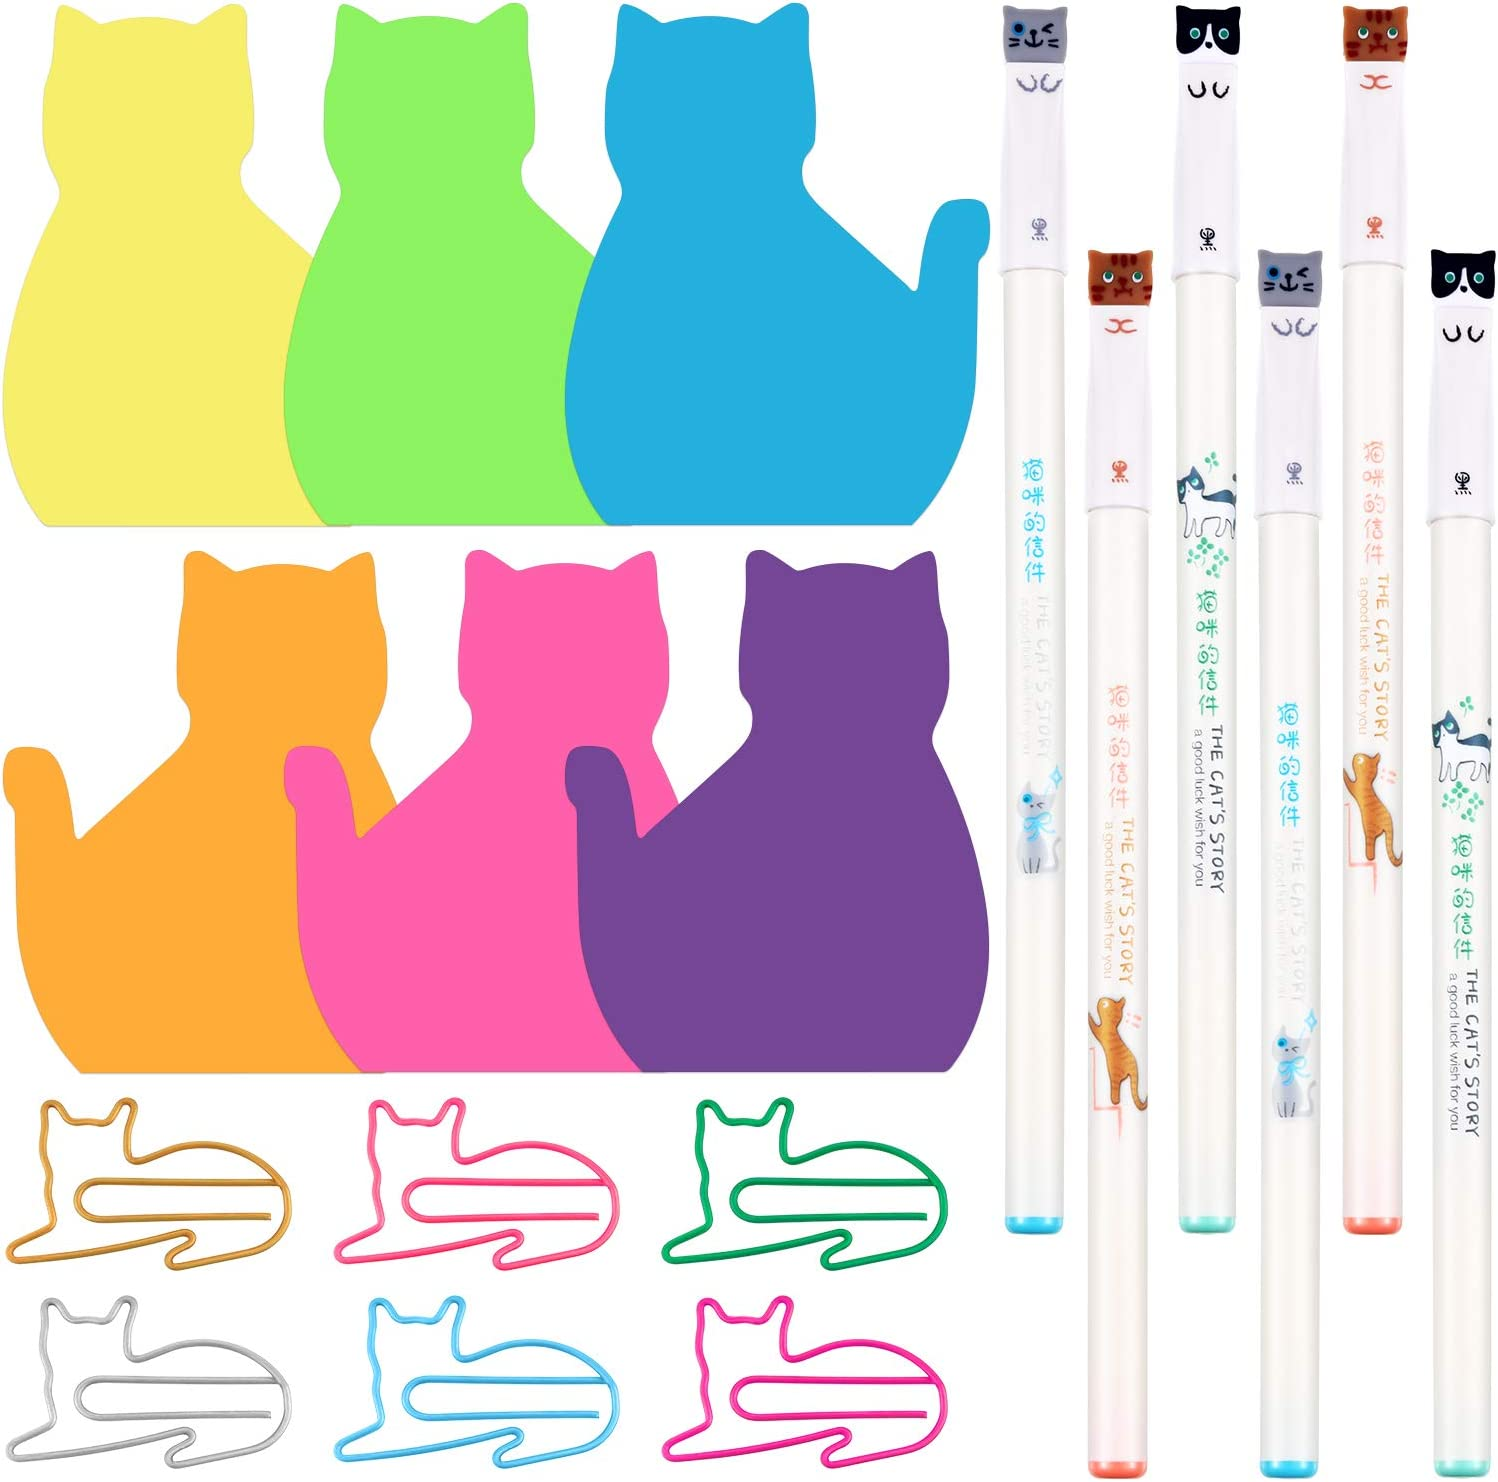 180 Sheets Cute Cat Sticky Notes, 60 Pieces Cat Paper Clips and 6 Pieces Creative Cat Gel Ink Pens for Home Office School Stationary Cat Lover Gifts